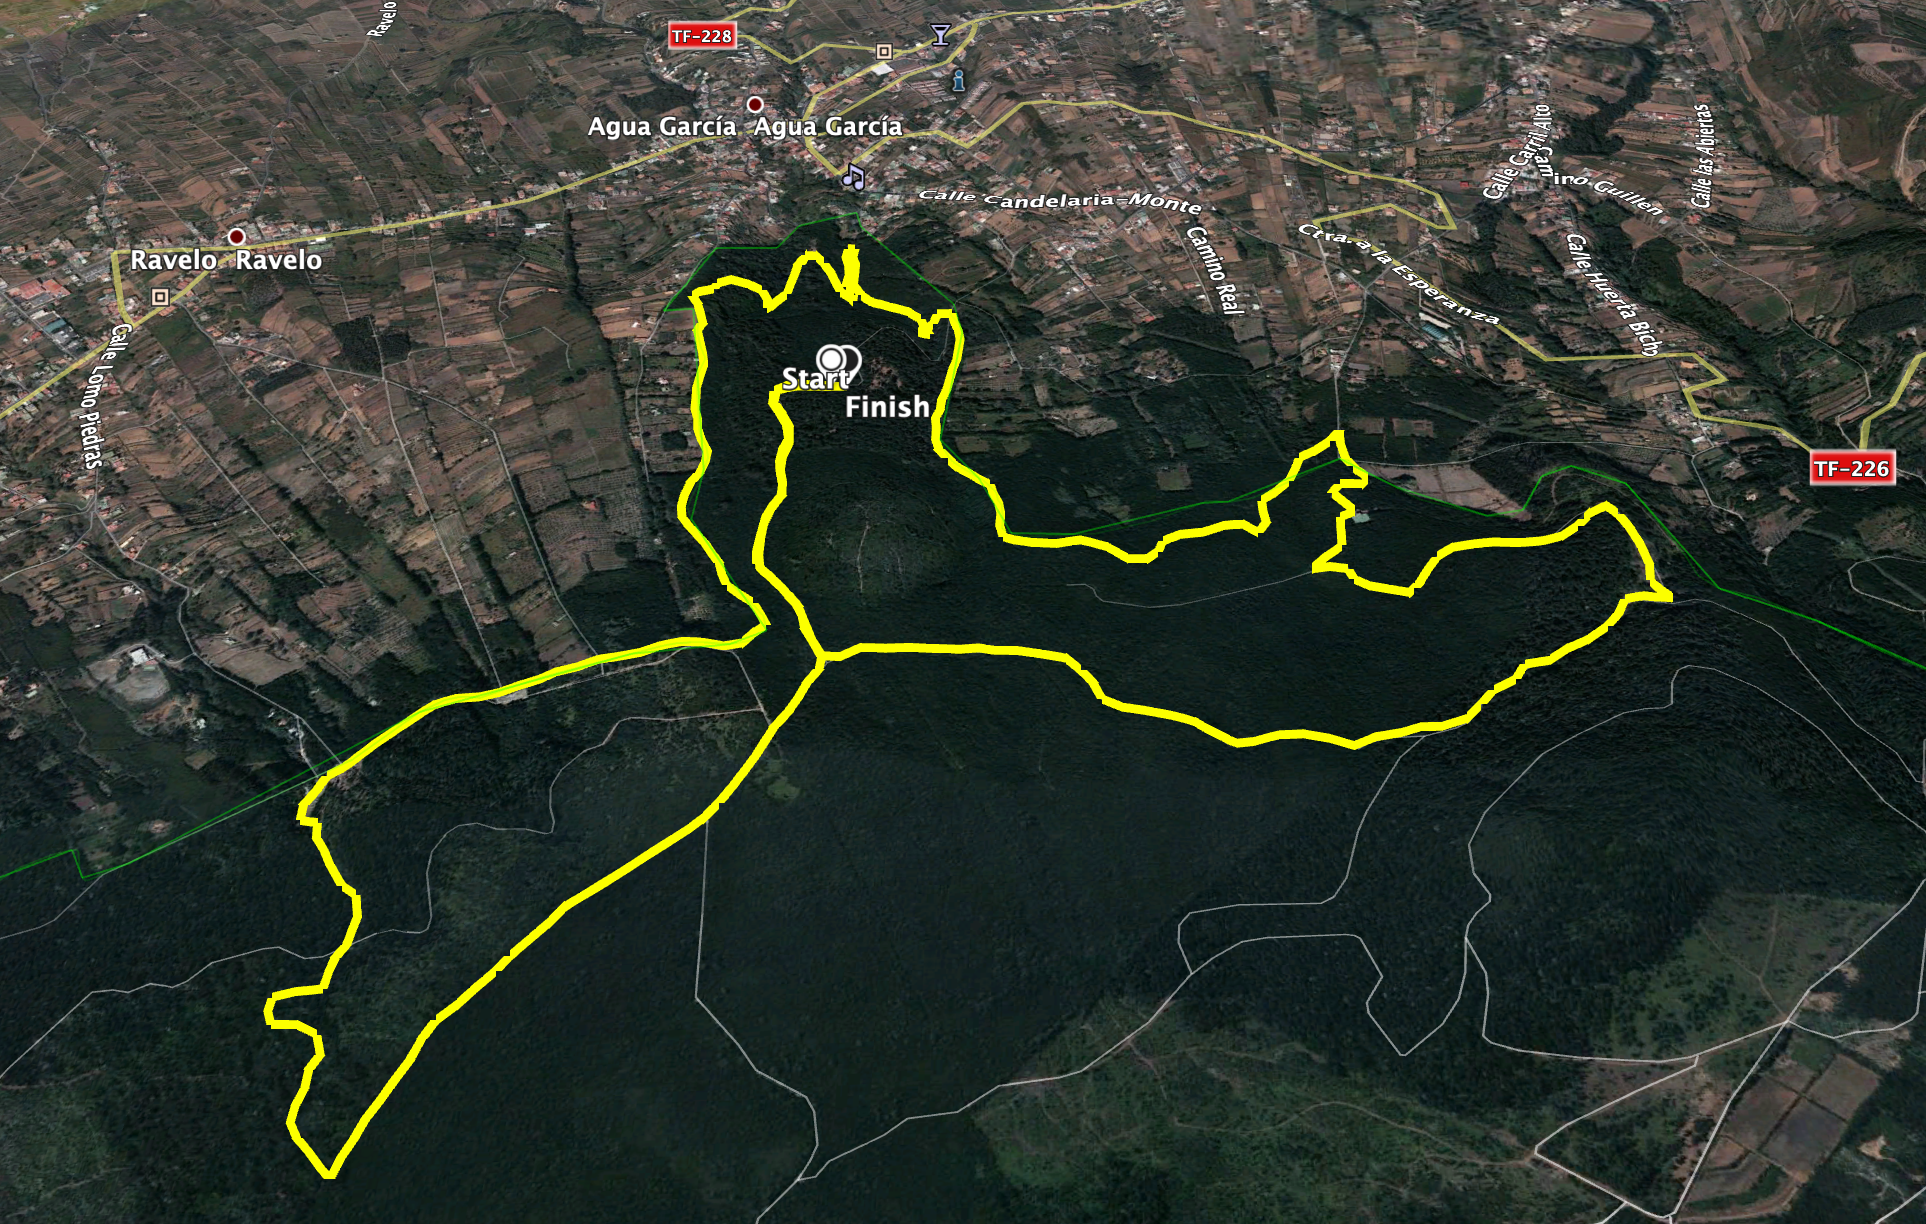 Track of the hike on the north side of the Esperanza Forest Lomo de Jara